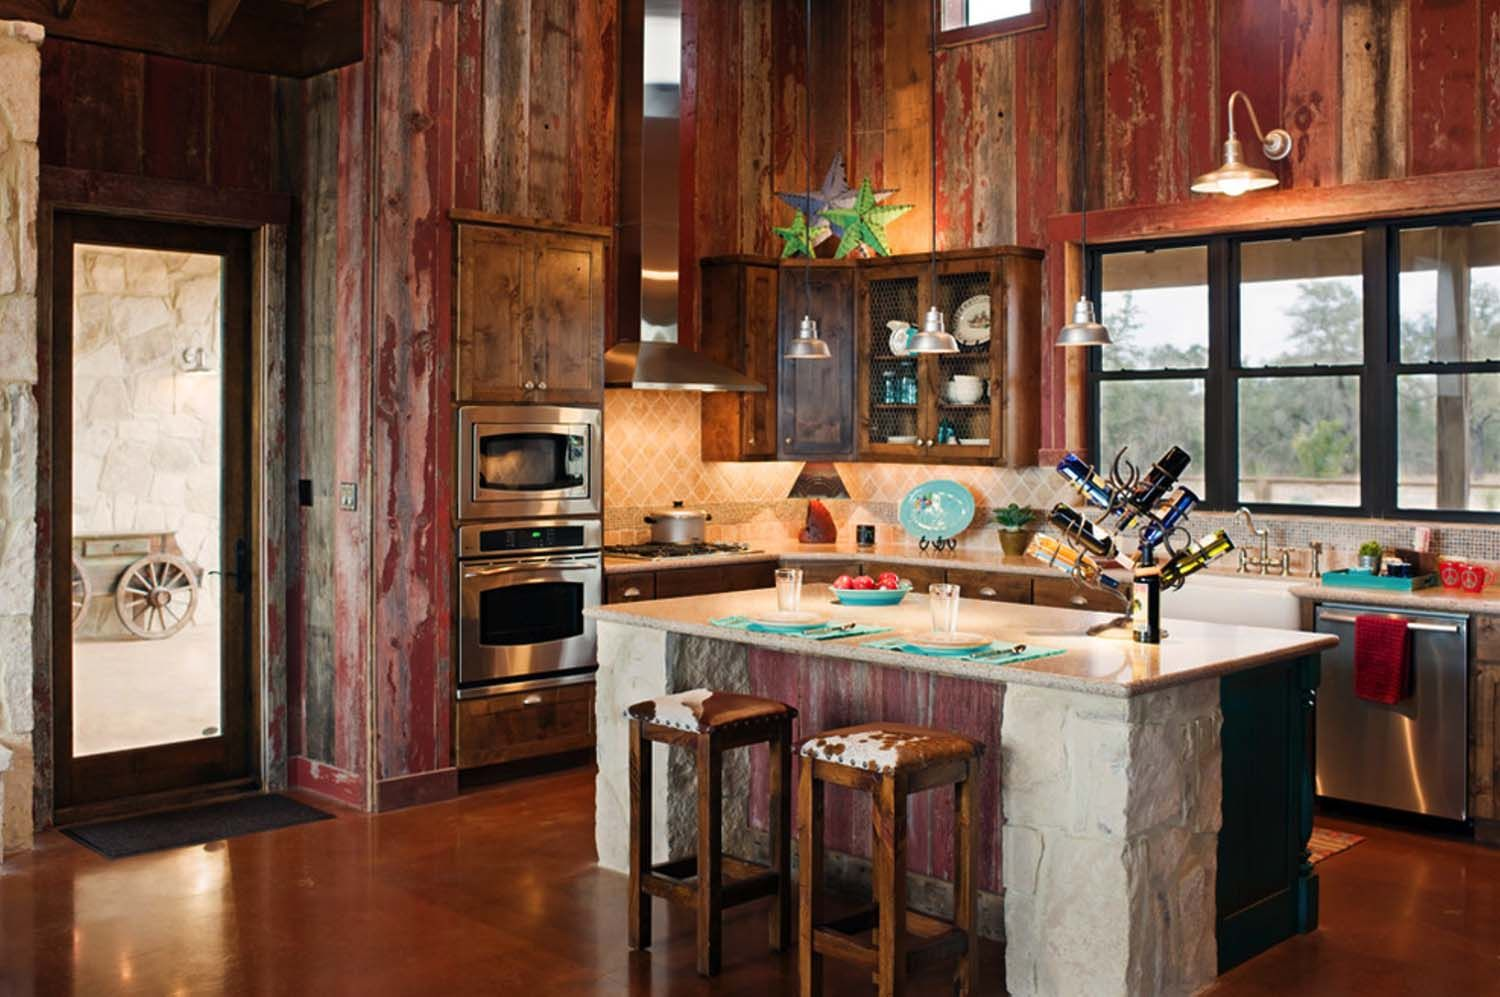 Rustic ranch house designed for family gatherings in Texas | Küche